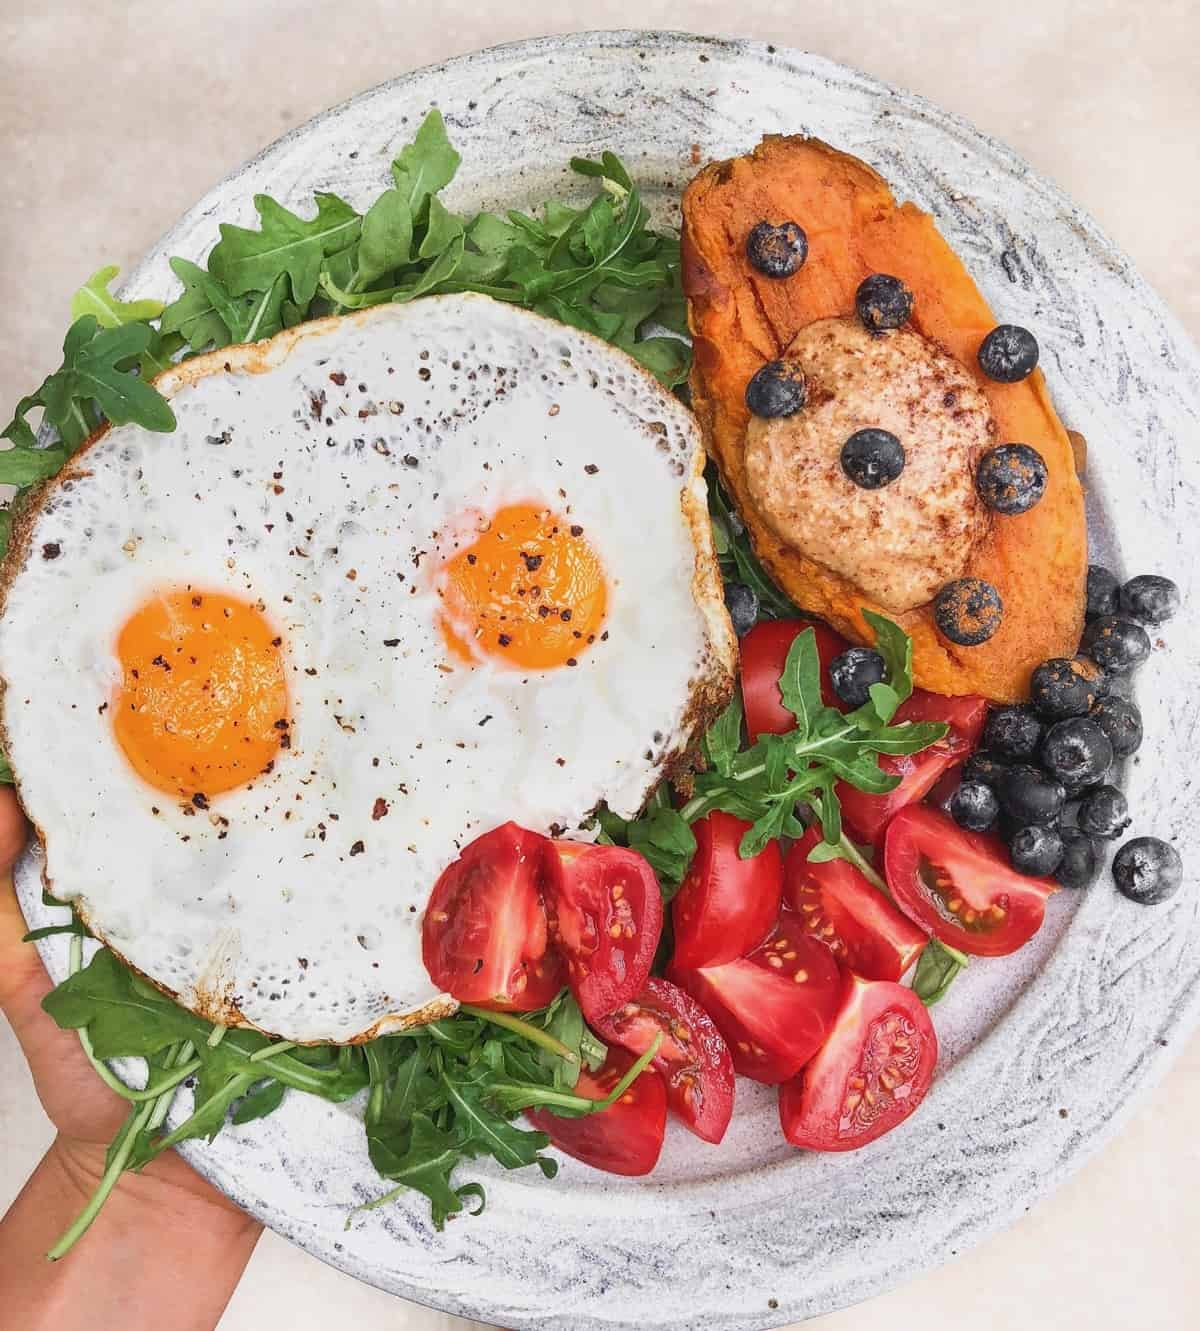 Plate with two fried eggs, half a sweet potato with almond butter and blueberries on it, and tomatoes all over greens